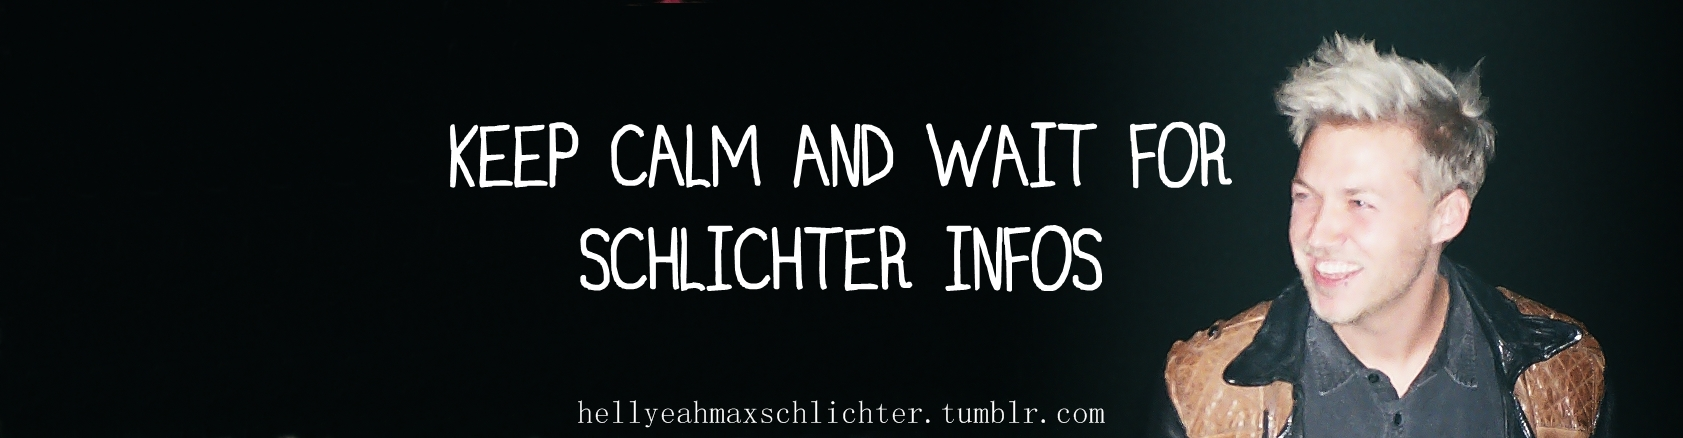 Keep Calm Wait For Schlichter Infos